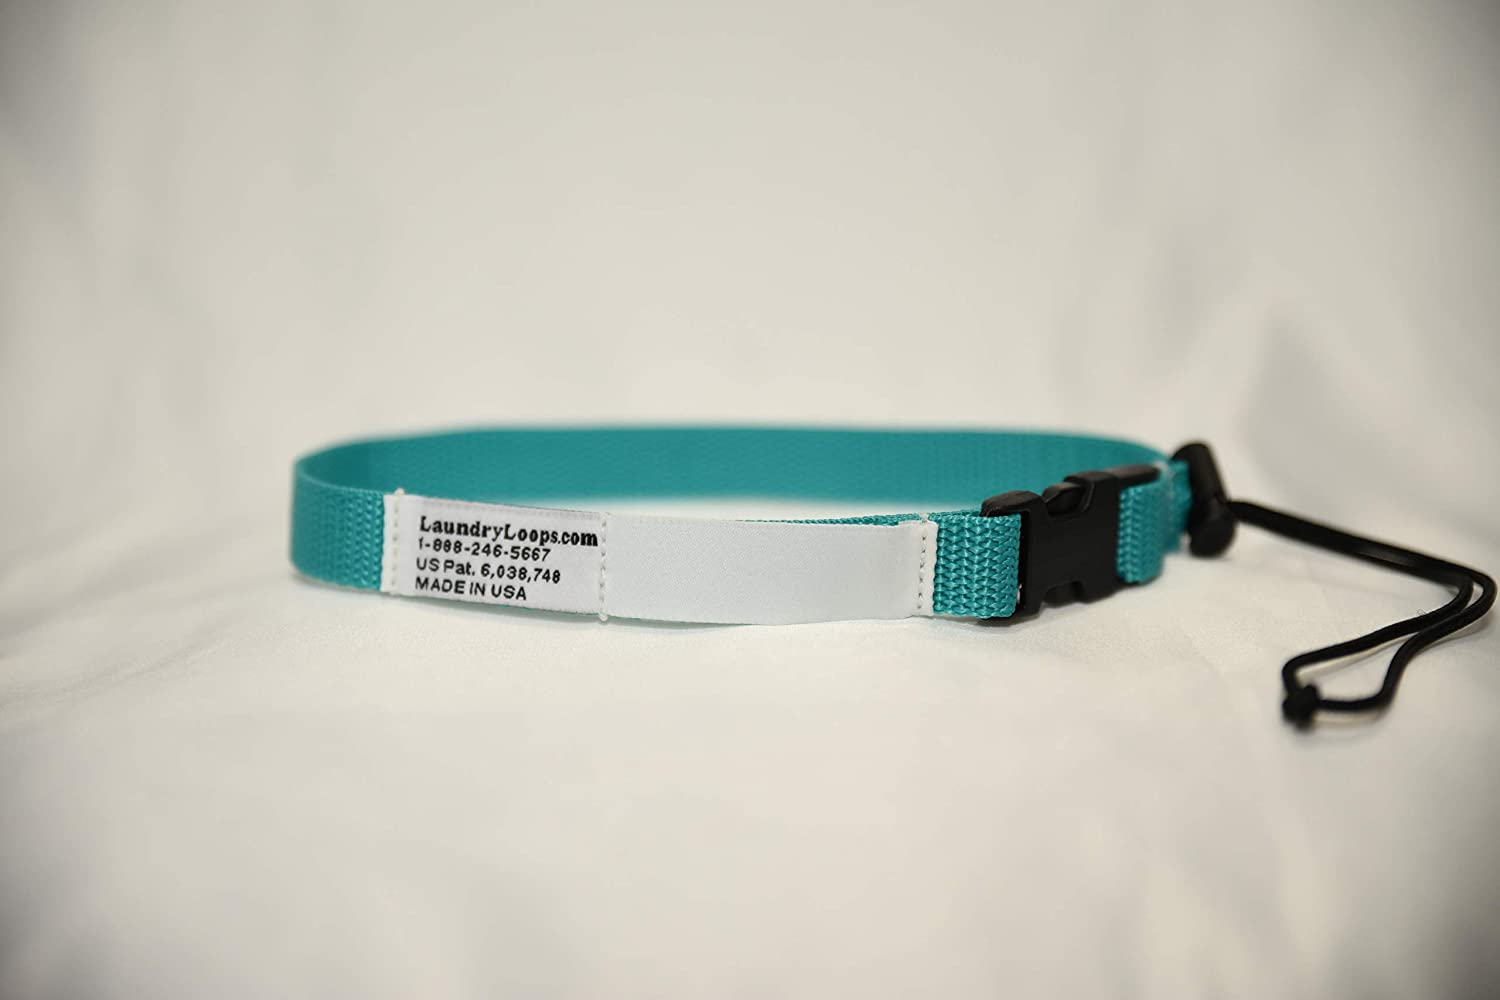 Laundry Loops with Sock Snare, Premium Turquoise Laundering Strap